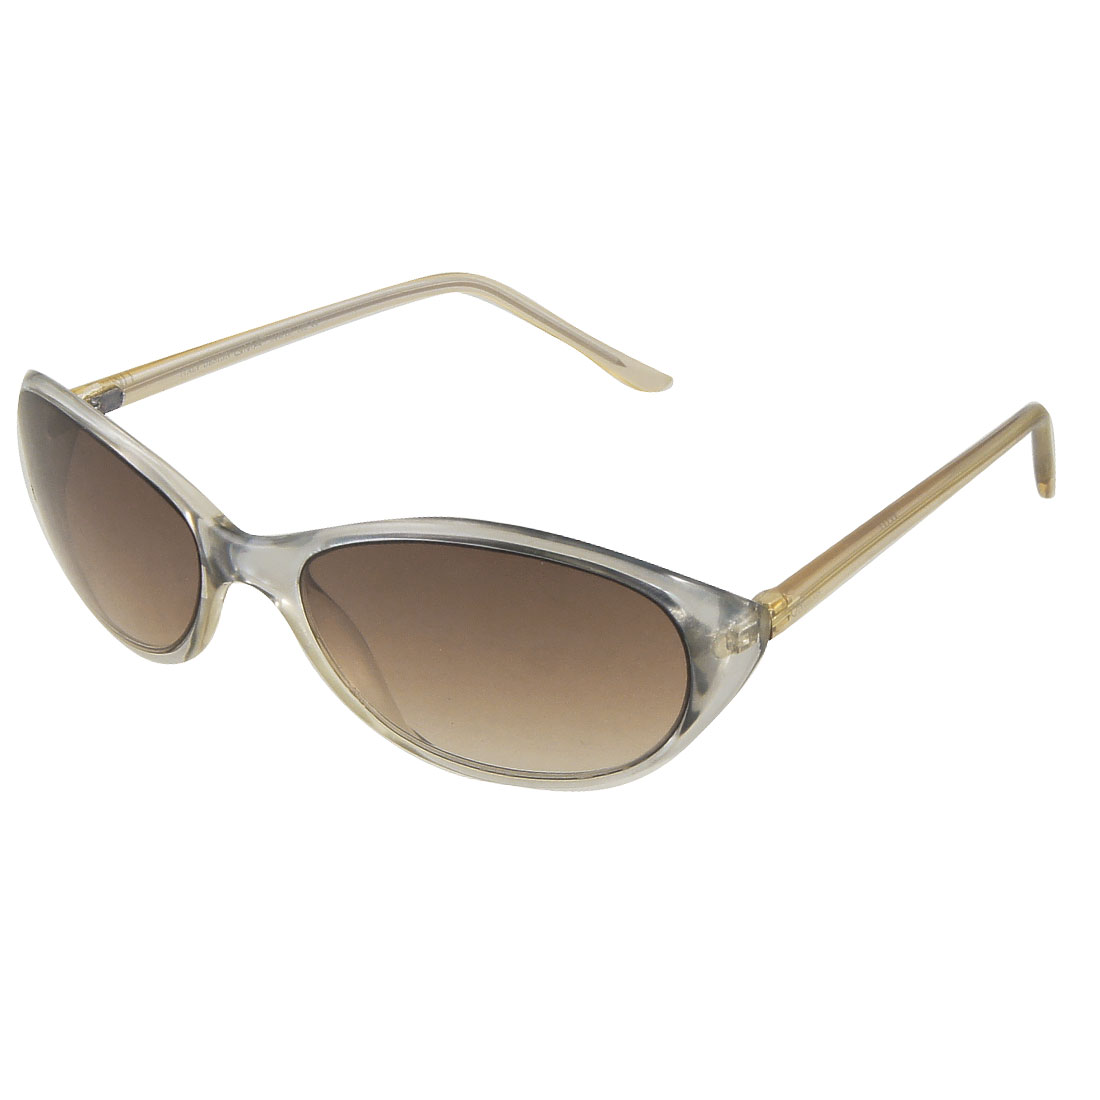 Women Plastic Full Rim Frame Sunglasses Clear Khaki